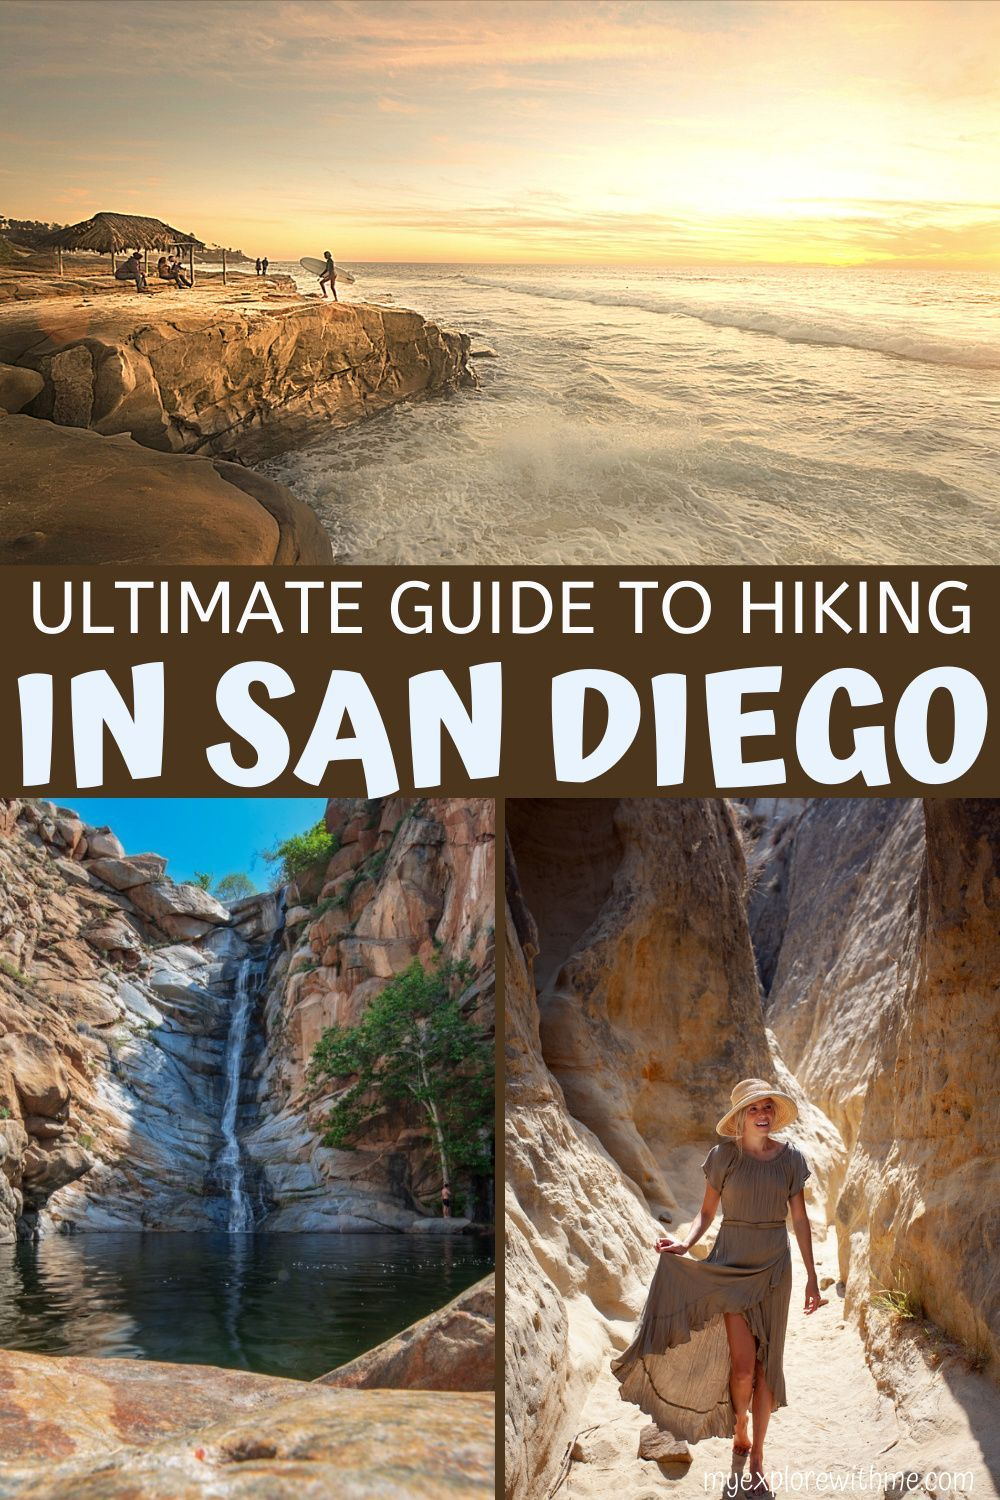 THE 9 BEST HIKING TRAILS SAN DIEGO HAS TO OFFER -